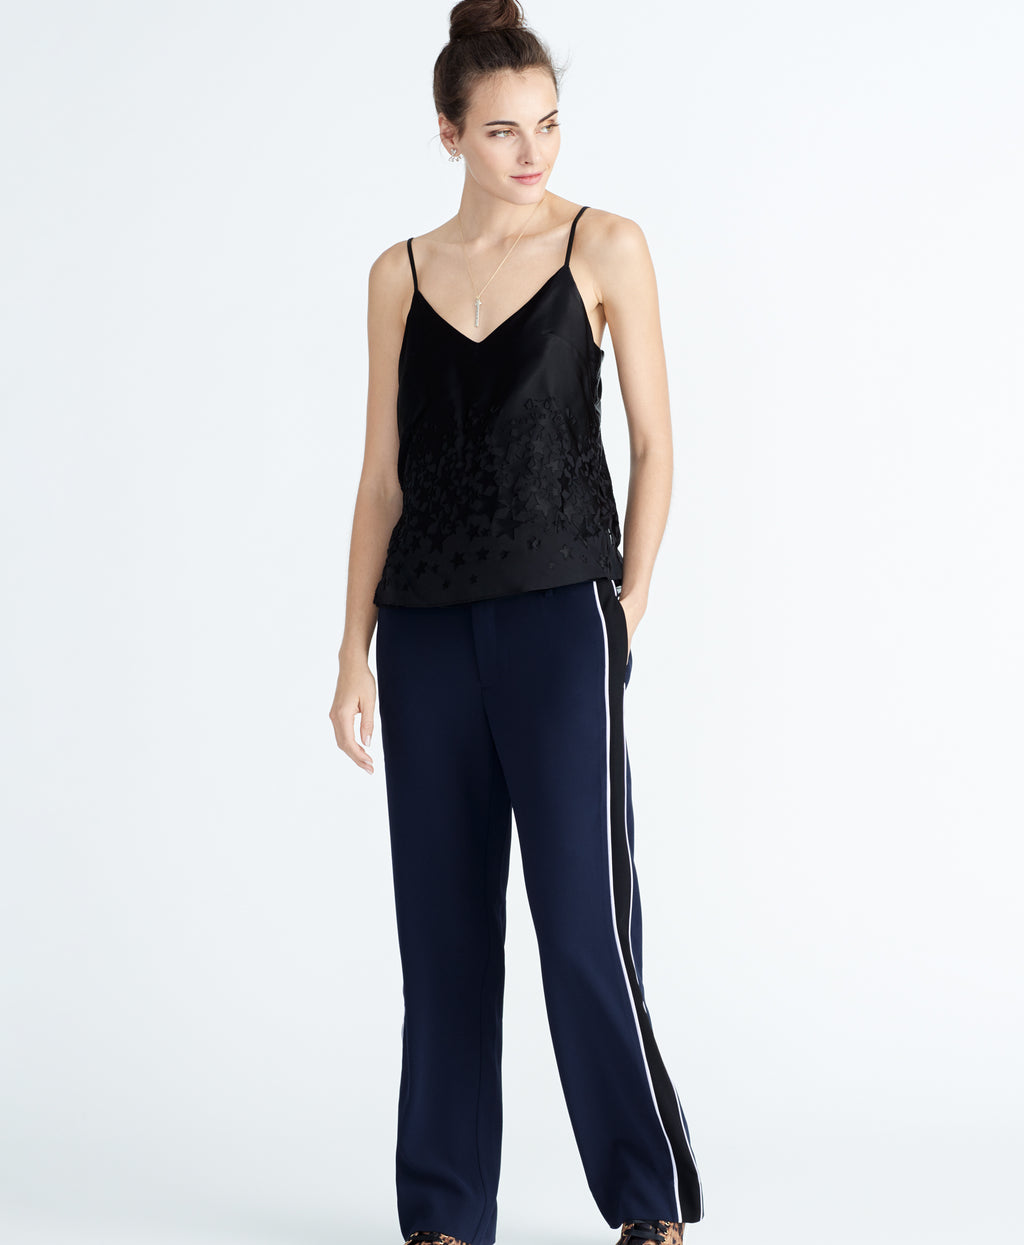 HALO PIPED PANT | HALO PIPED PANT